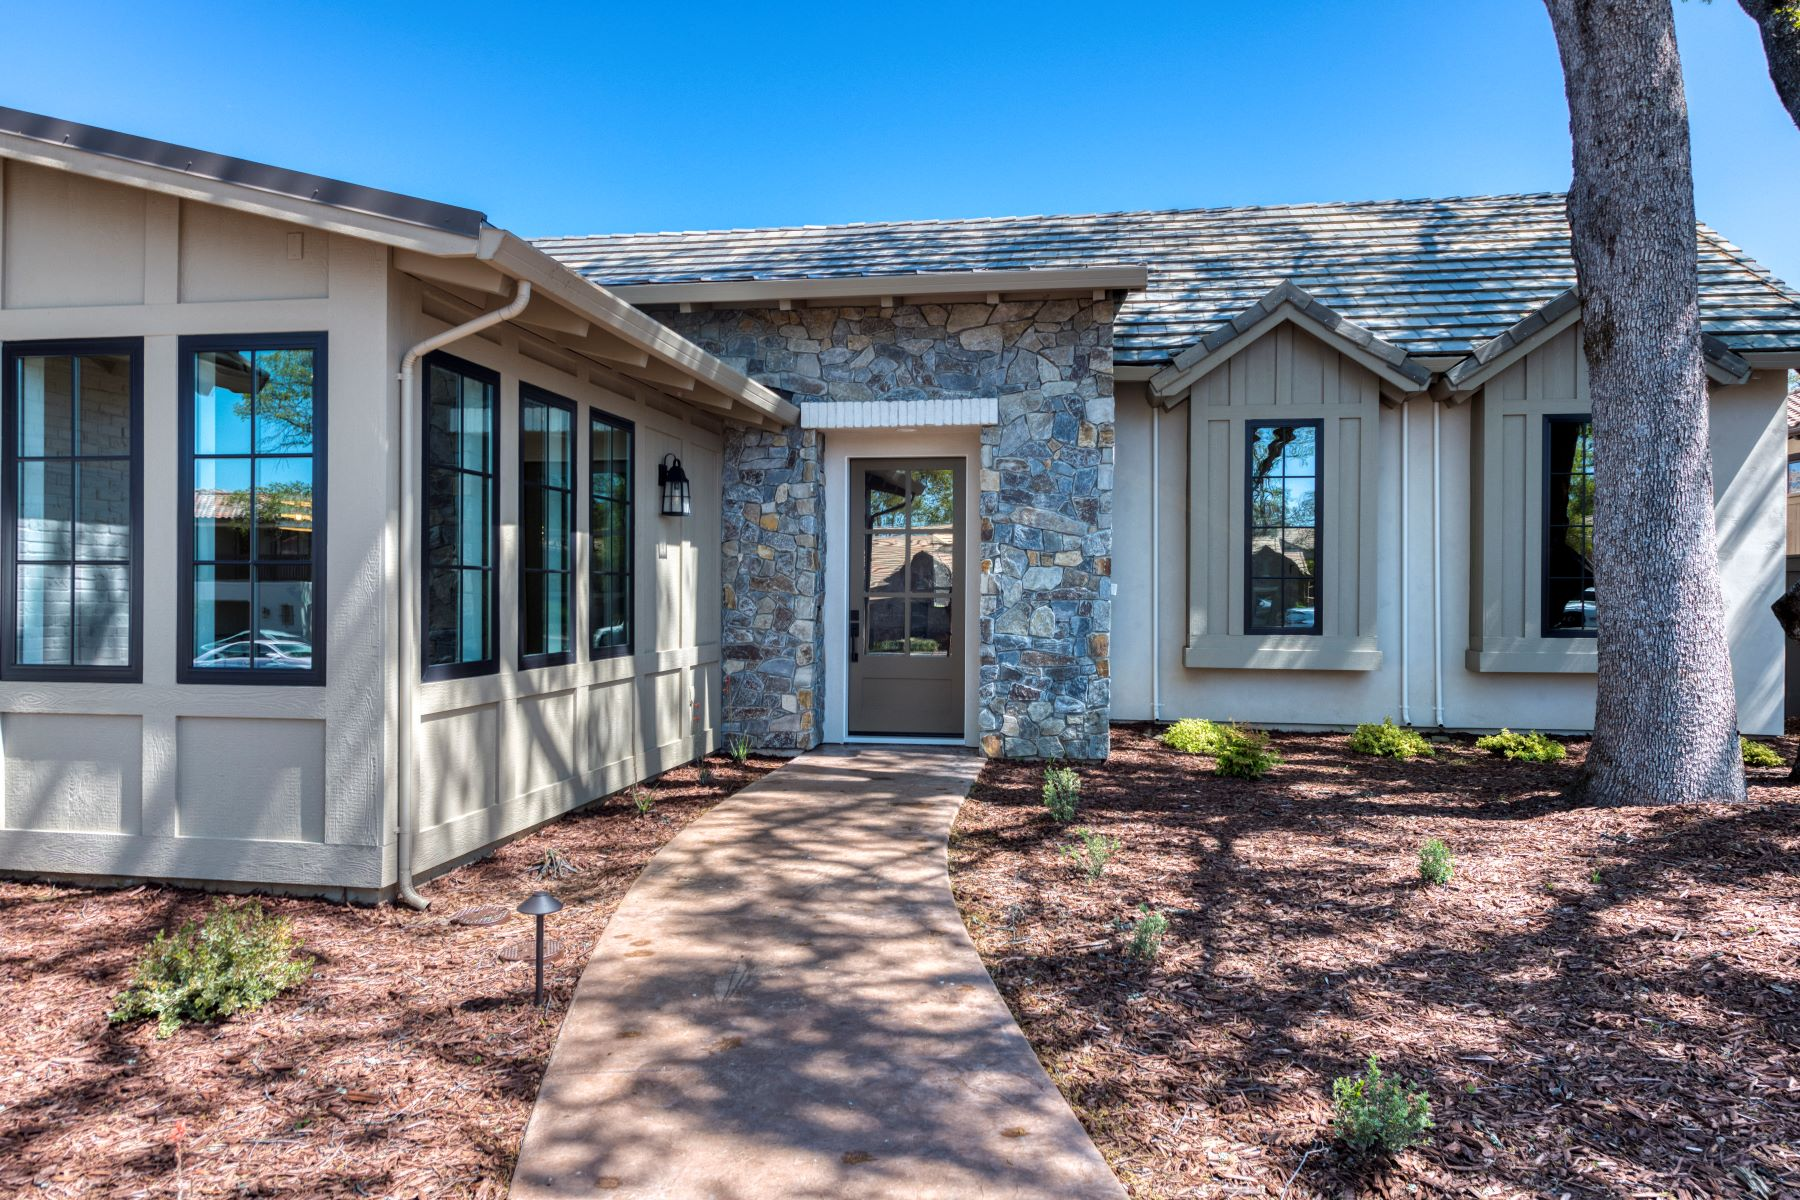 Single Family Homes for Sale at 3426 Greenview Drive, El Dorado Hills, CA 95762 3426 Greenview Drive El Dorado Hills, California 95762 United States